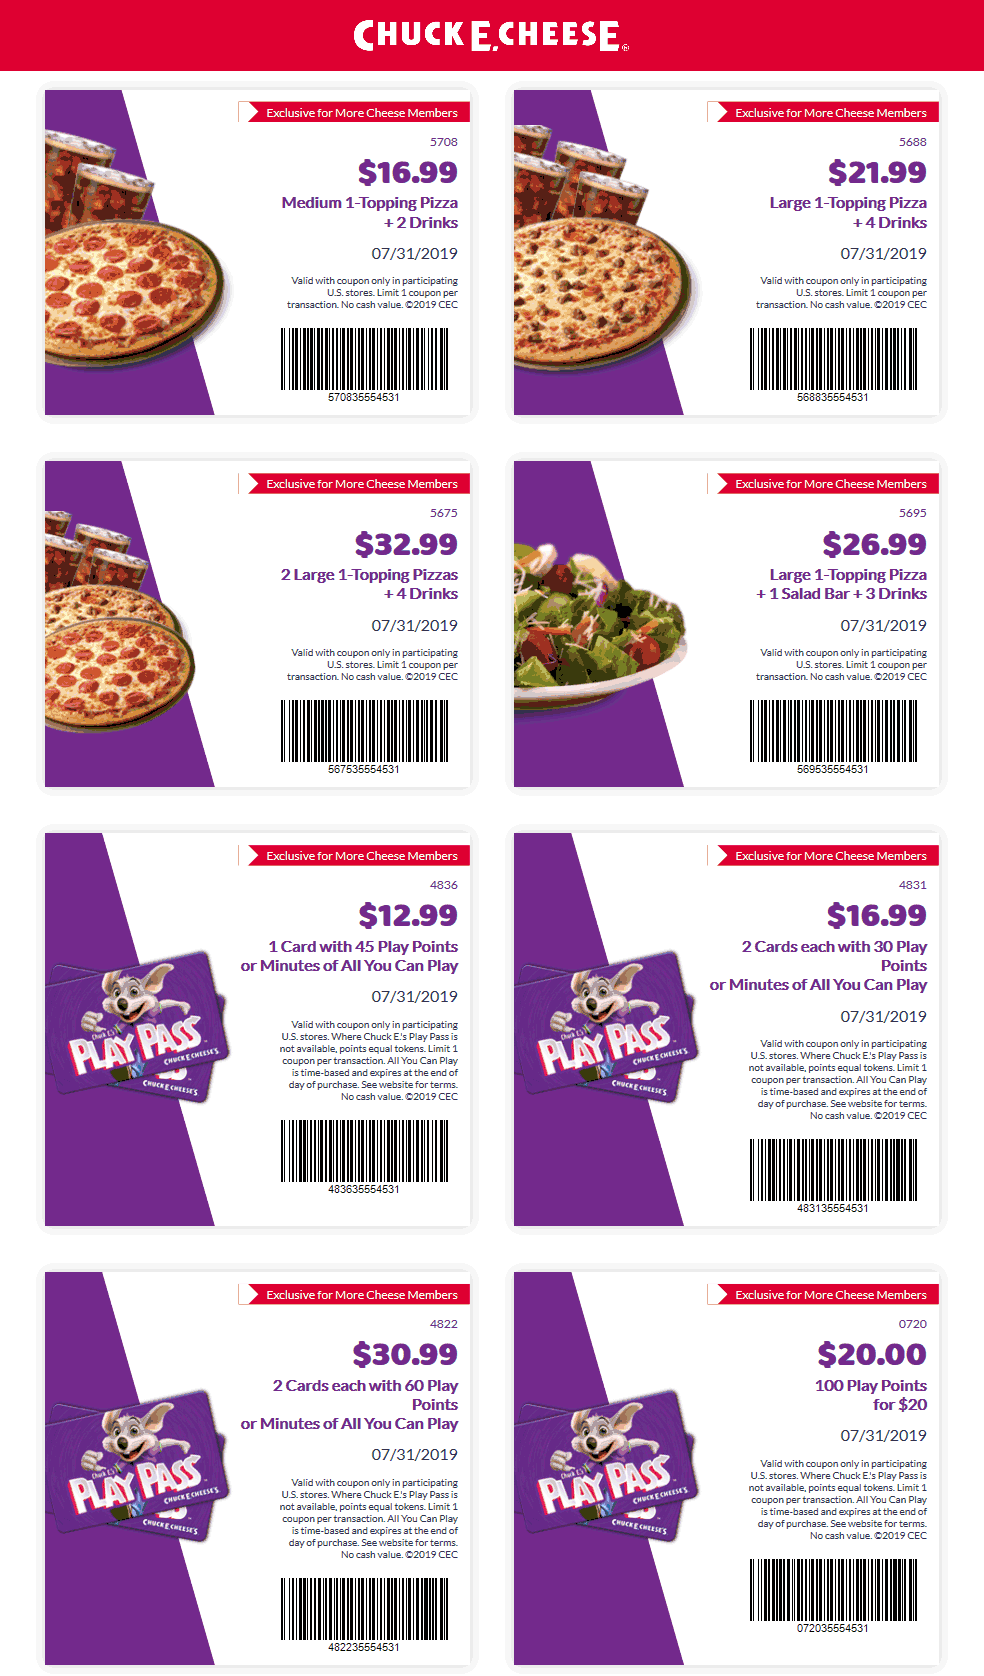 Chuck E. Cheese Coupon November 2019 100 play points for $20 & more at Chuck E. Cheese pizza